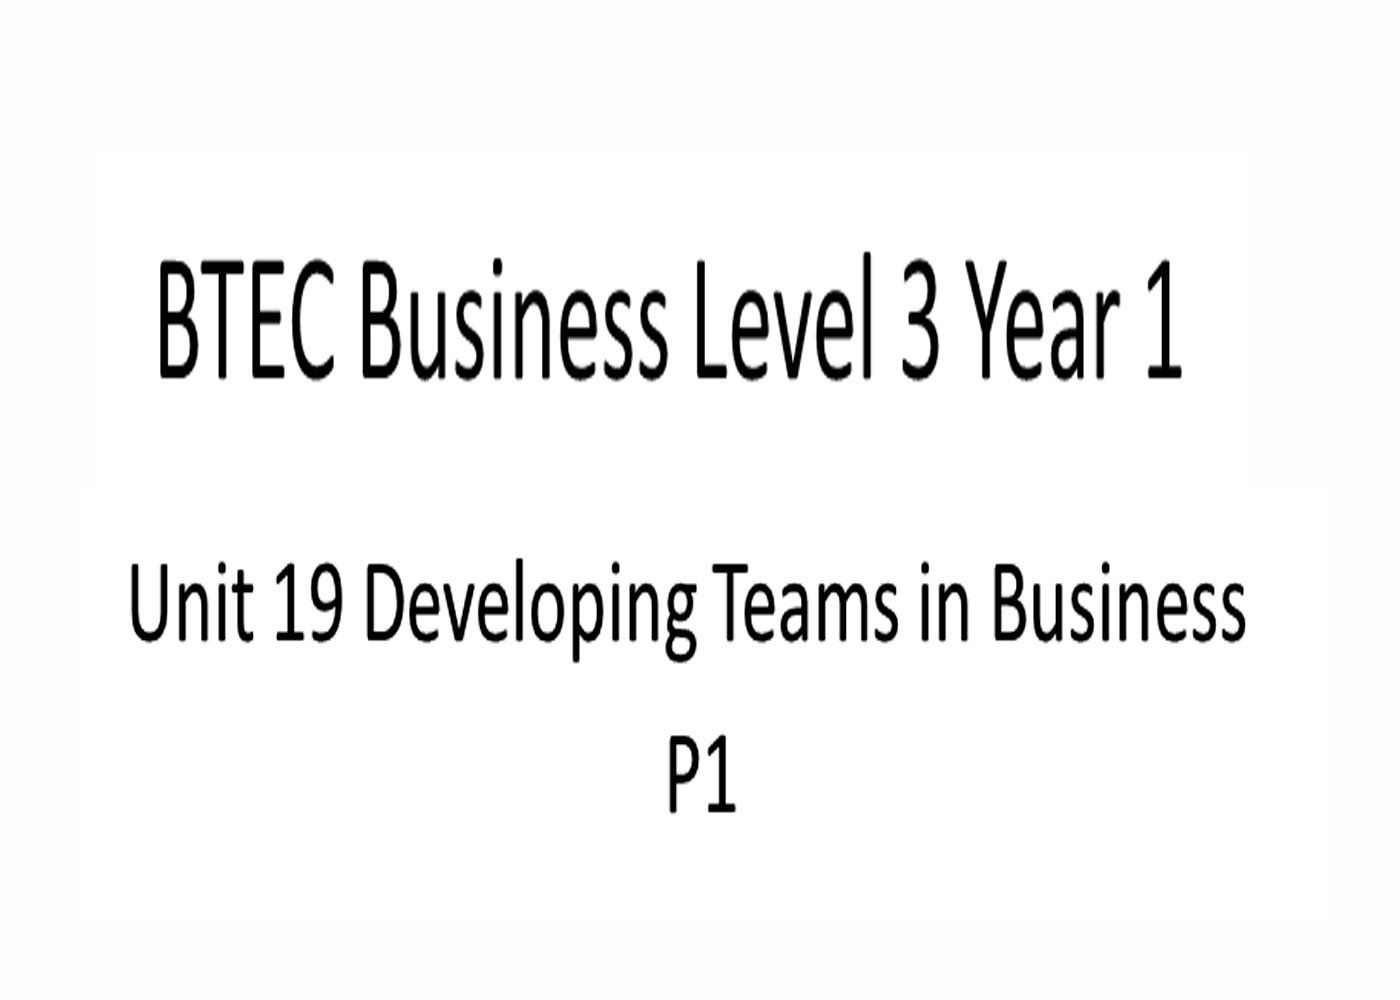 btec business level 3 unit 3 Read this essay on btec business level 3 unit 3 come browse our large digital warehouse of free sample essays get the knowledge you need in order to pass your classes and more.